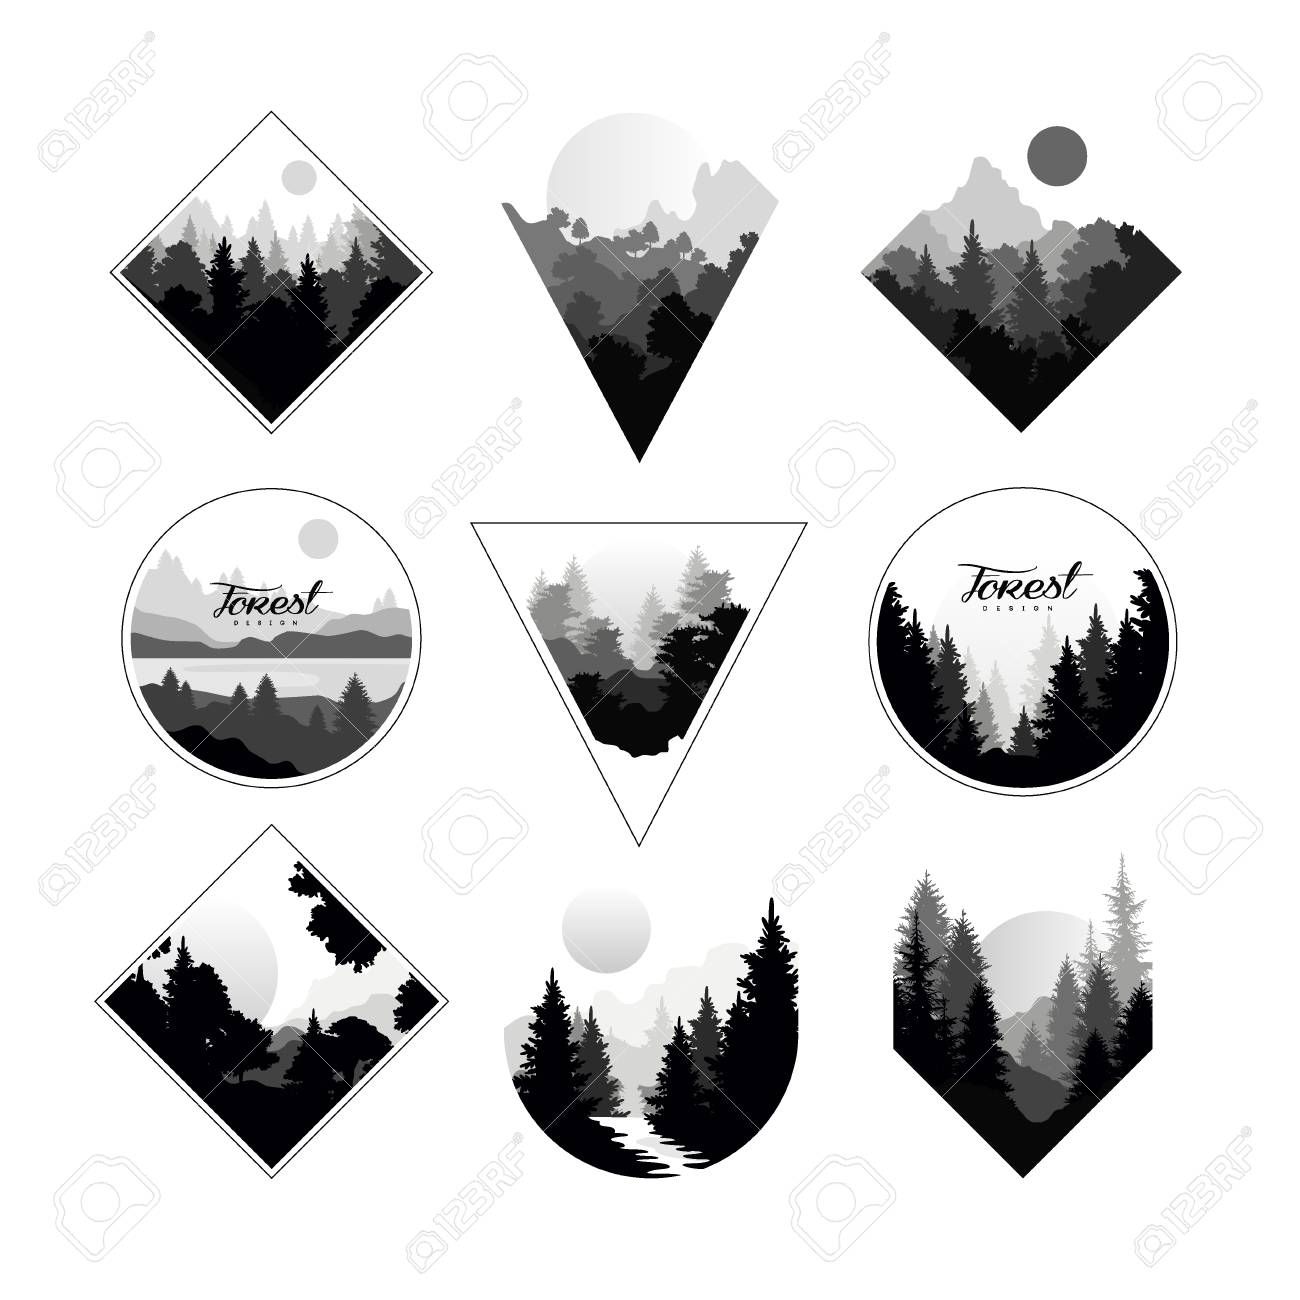 Set of monochrome landscapes in geometric shapes circle, triangle, rhombus. Natural sceneries with wild pine forests. - 95809314